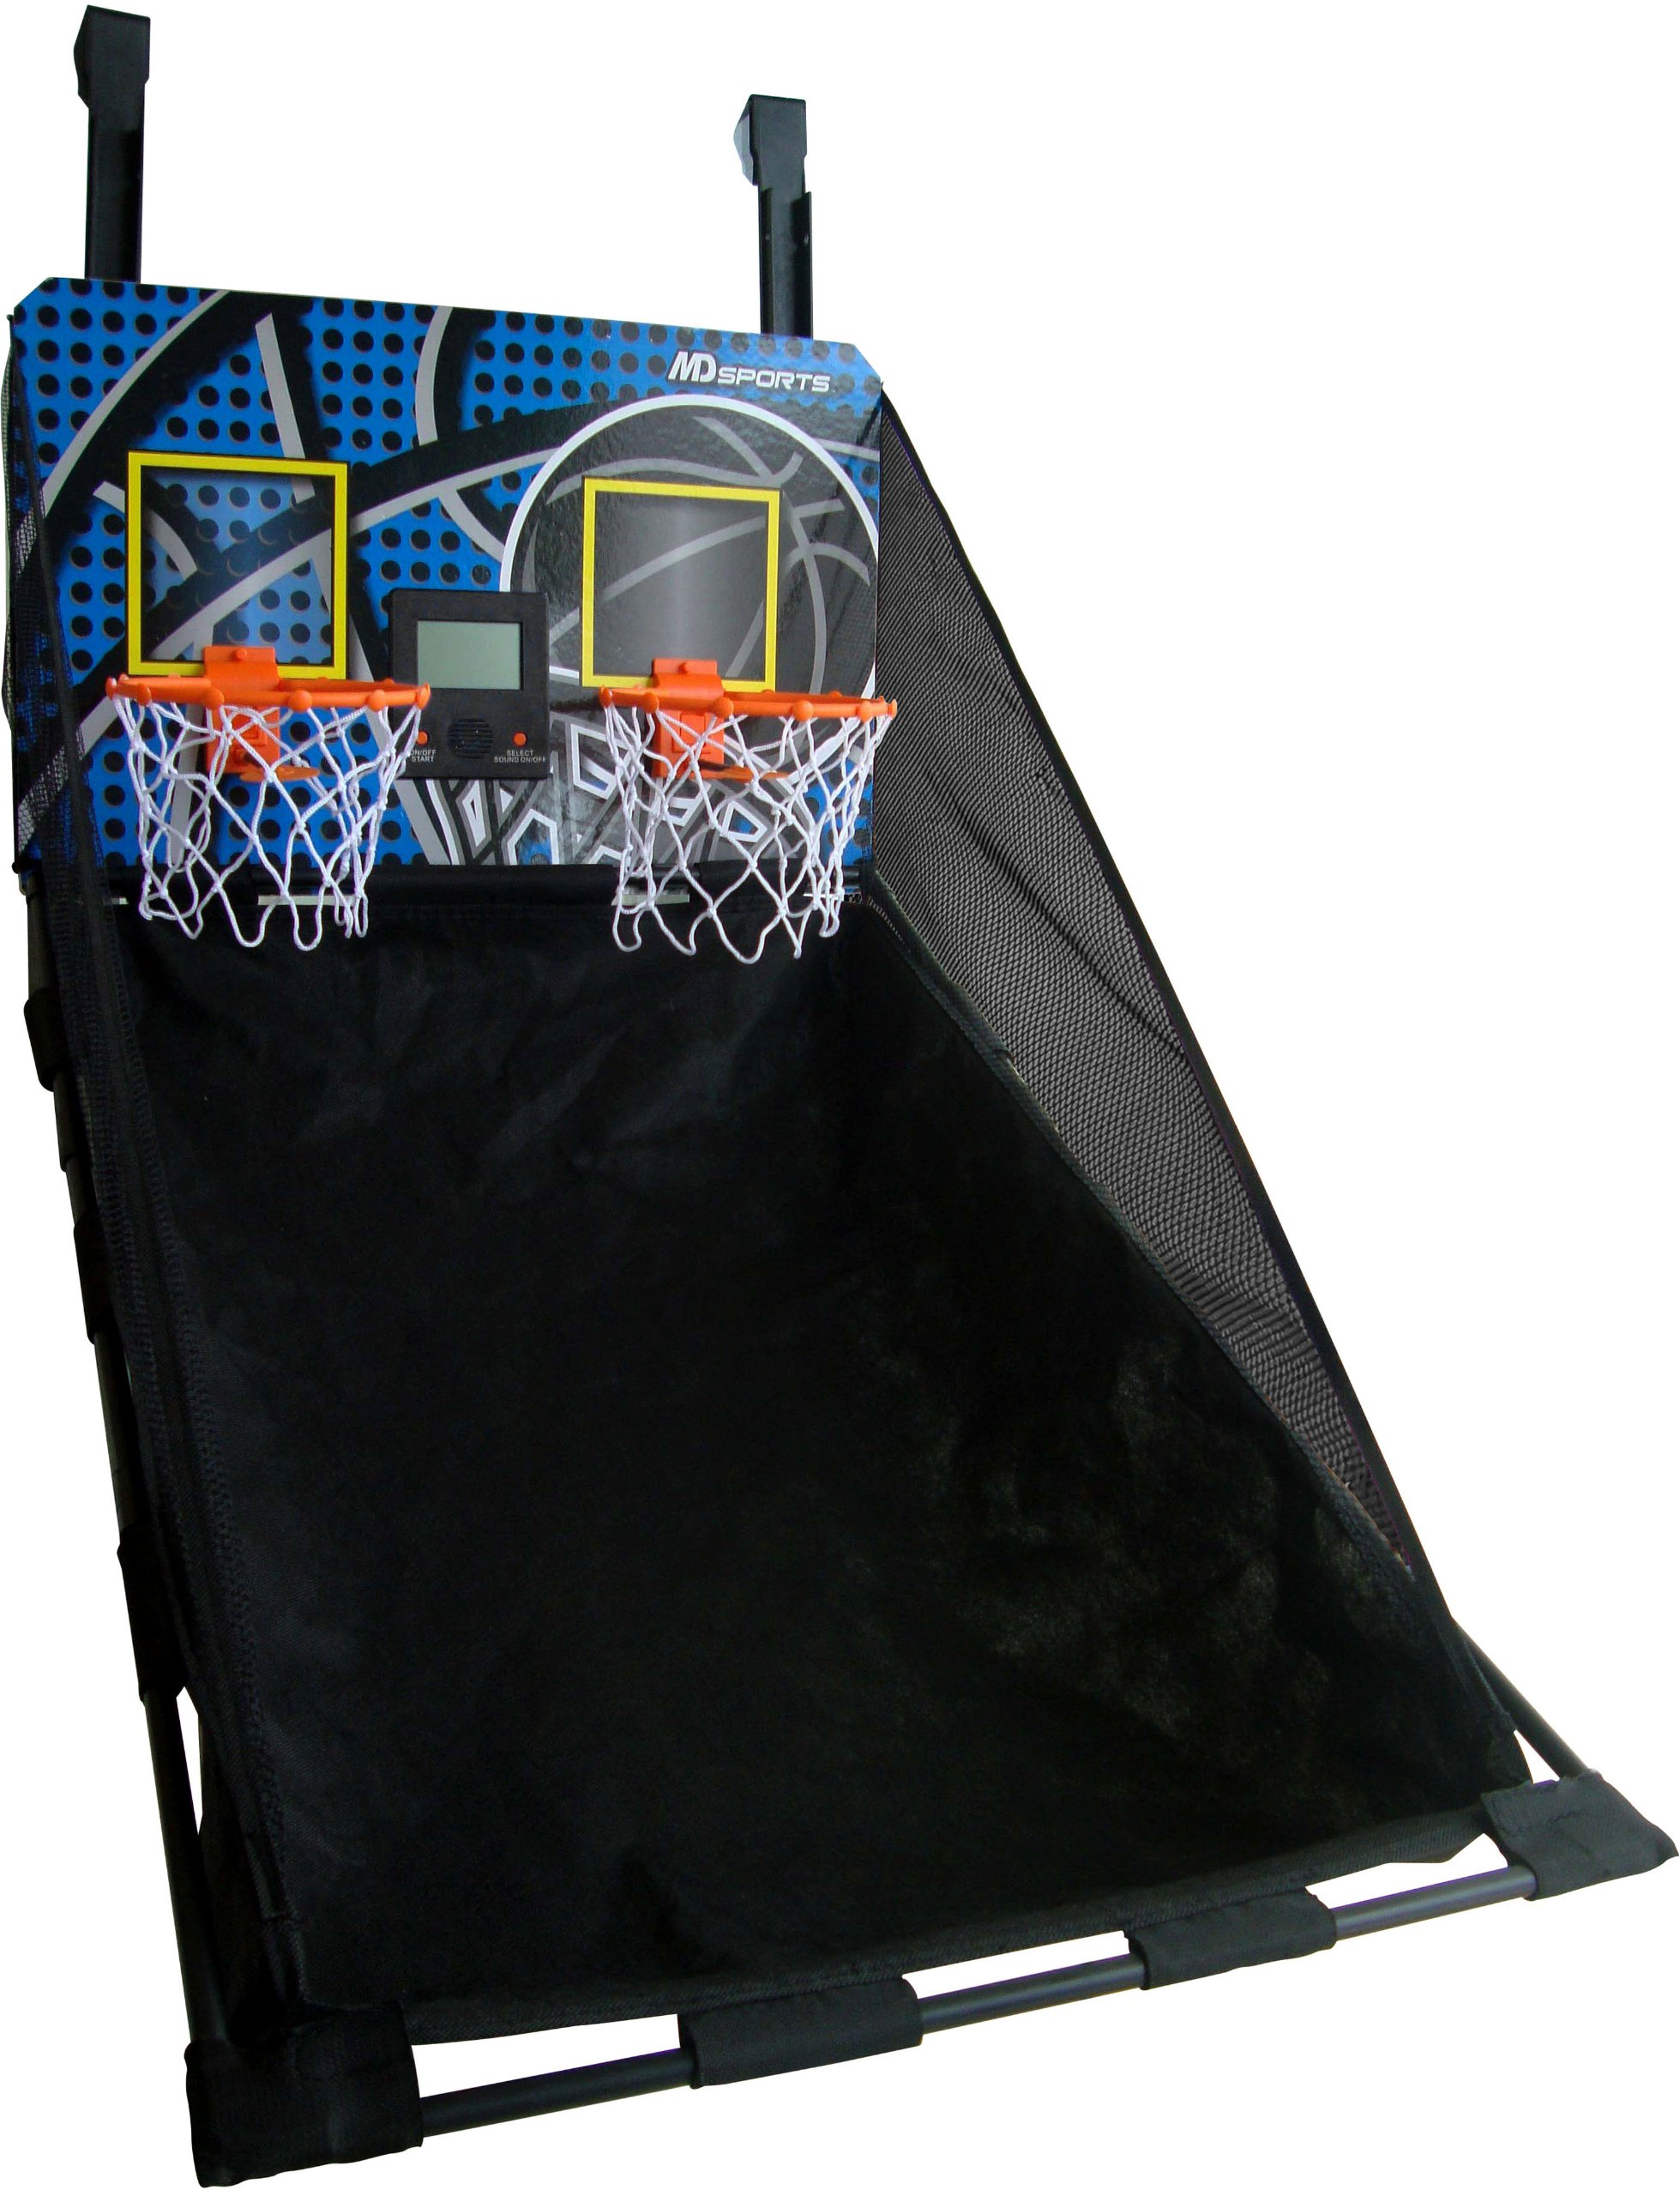 Medal Sports Door Hoops 2-Player Basketball Game Table, 34.5x22.125-Inch by MD Sports